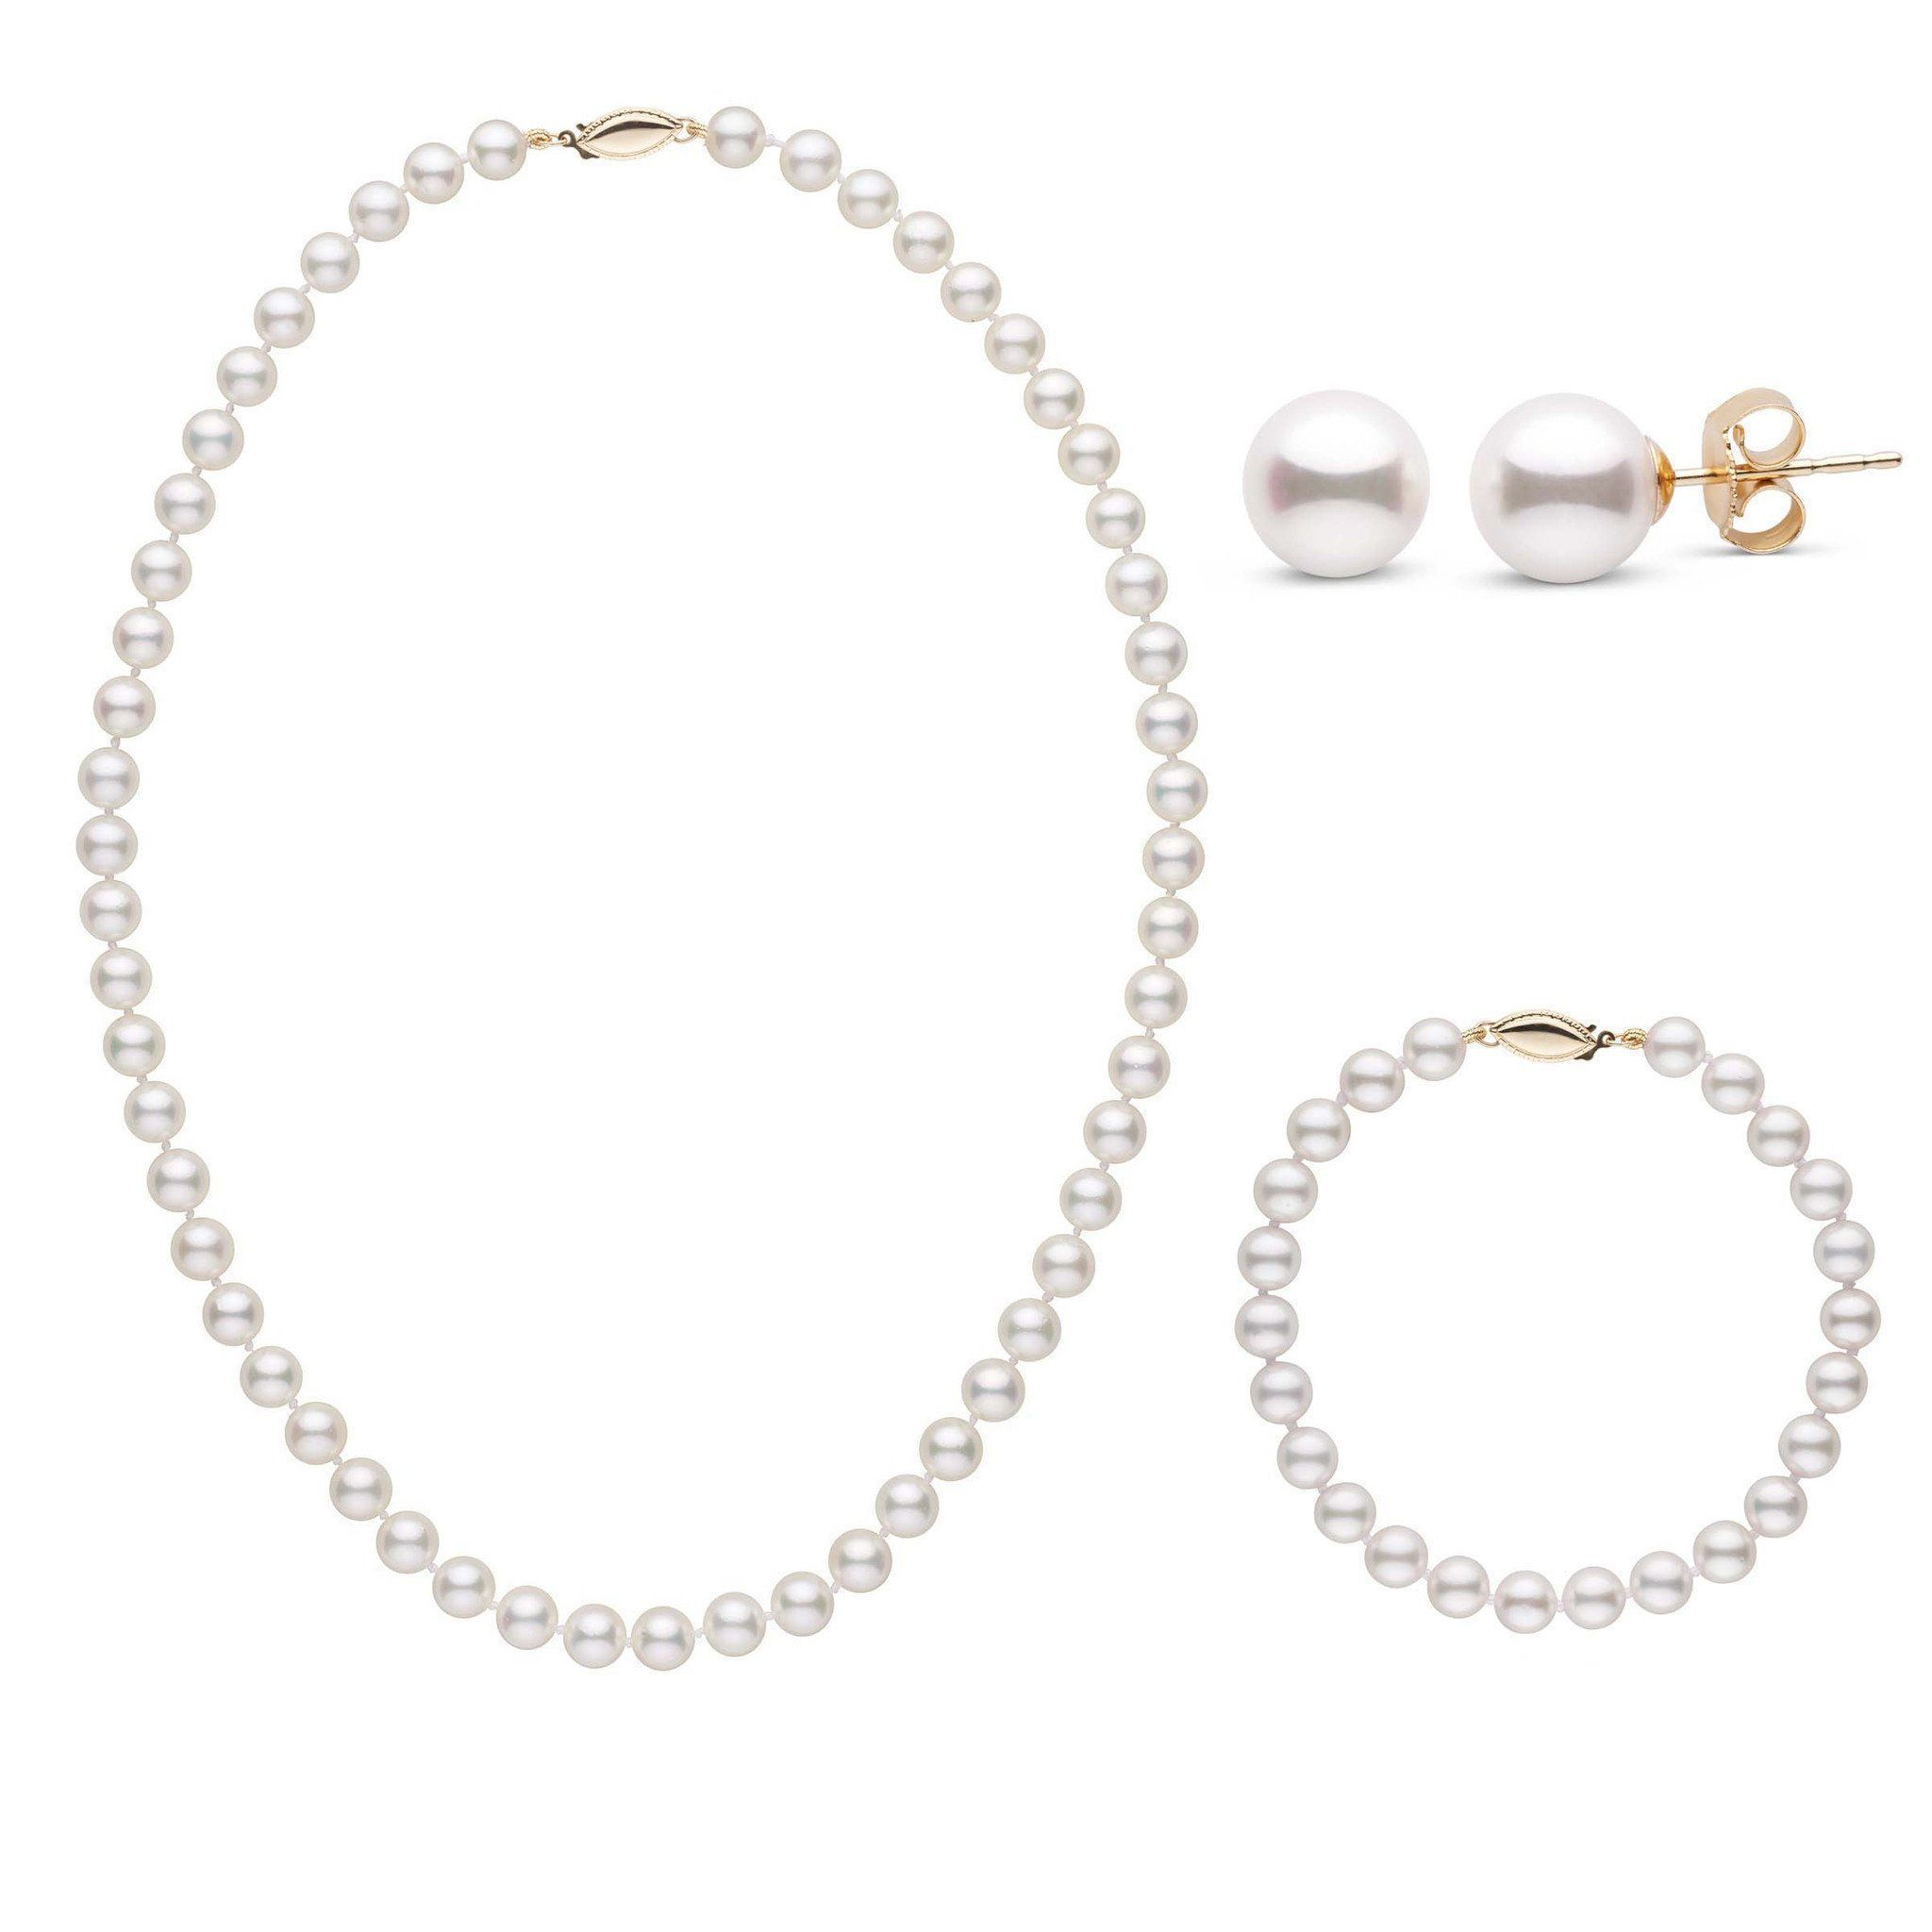 16 Inch 3 Piece Set of 6.5-7.0 mm AA+ White Akoya Pearls